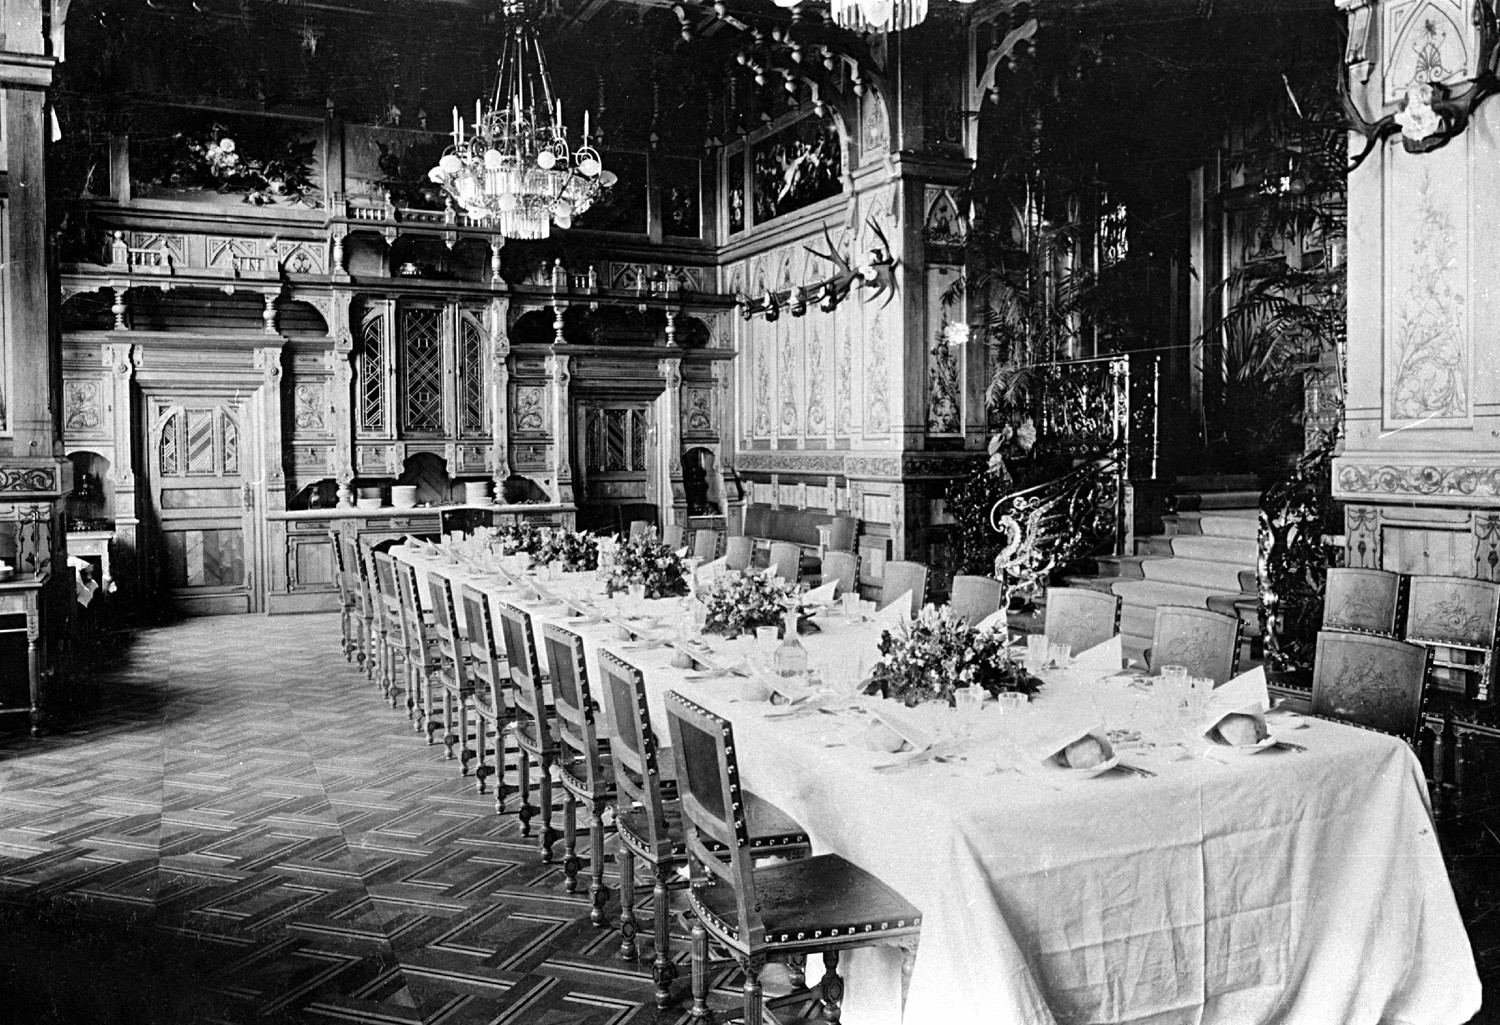 Interior of the palace of the Romanov dynasty, built in 1894 on the order of Tsar Alexander III of Russia, 1897